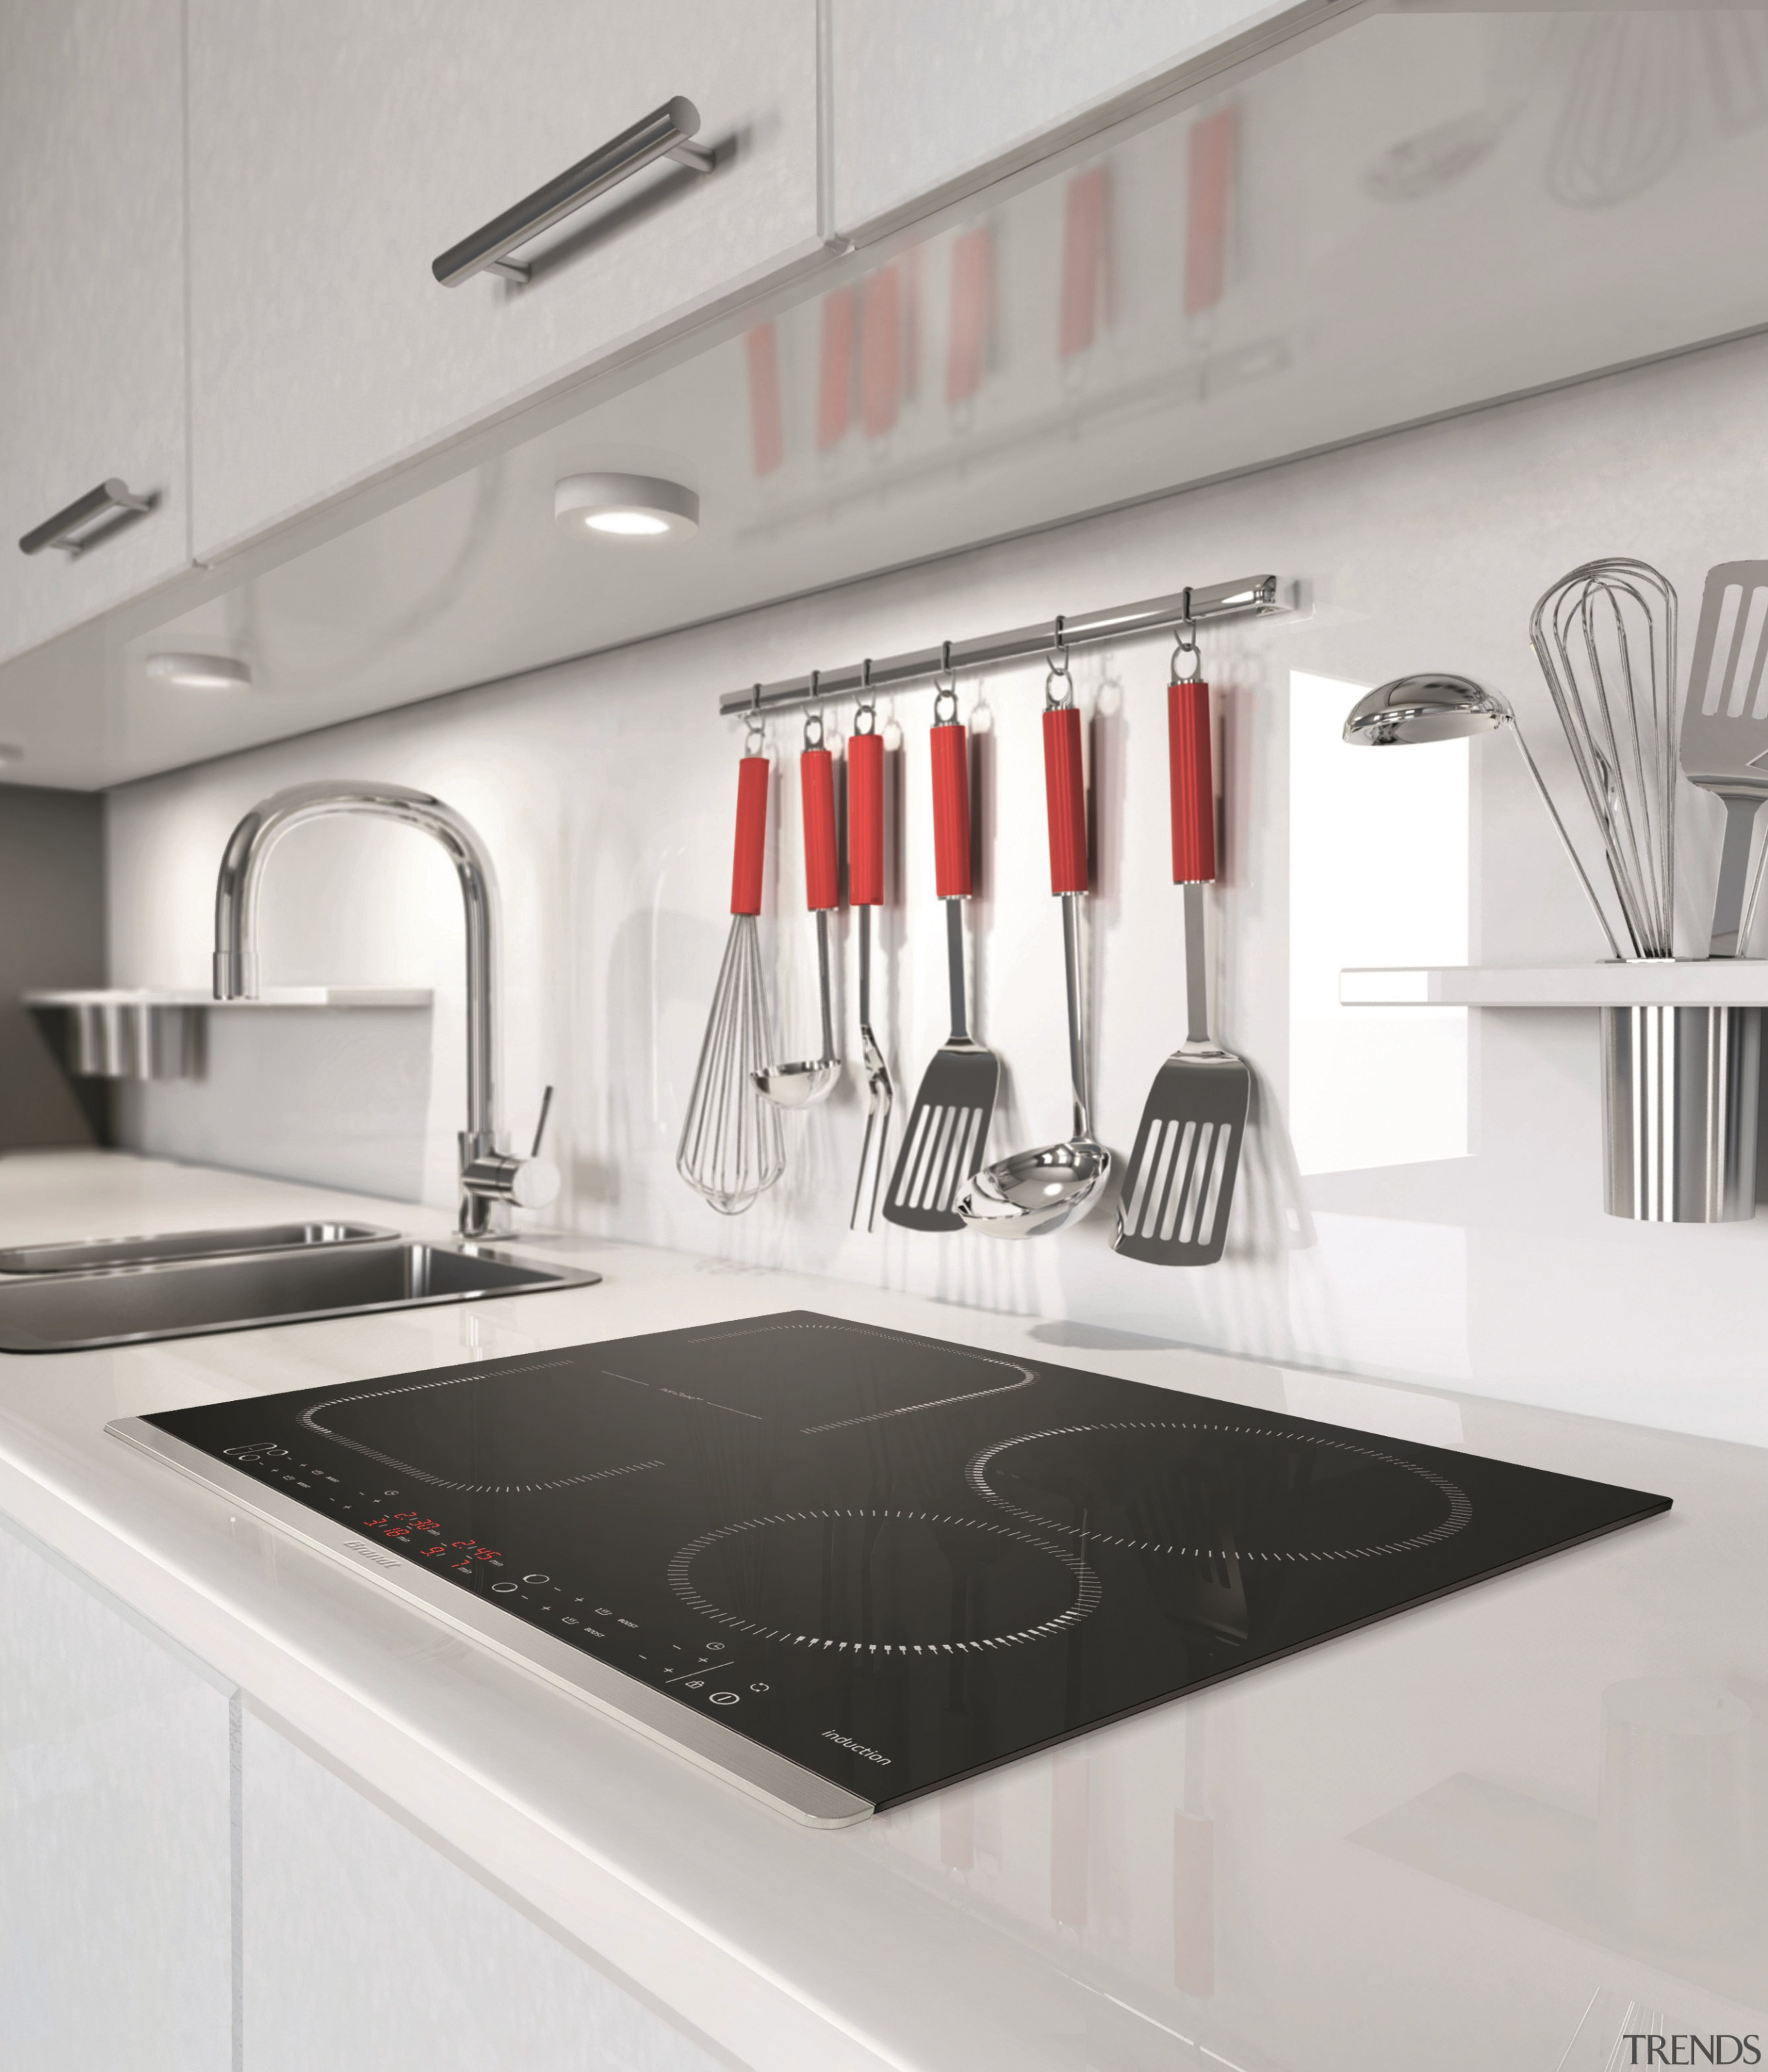 Flat-out advantage – the toughened ceramic glass Induction countertop, floor, interior design, kitchen, gray